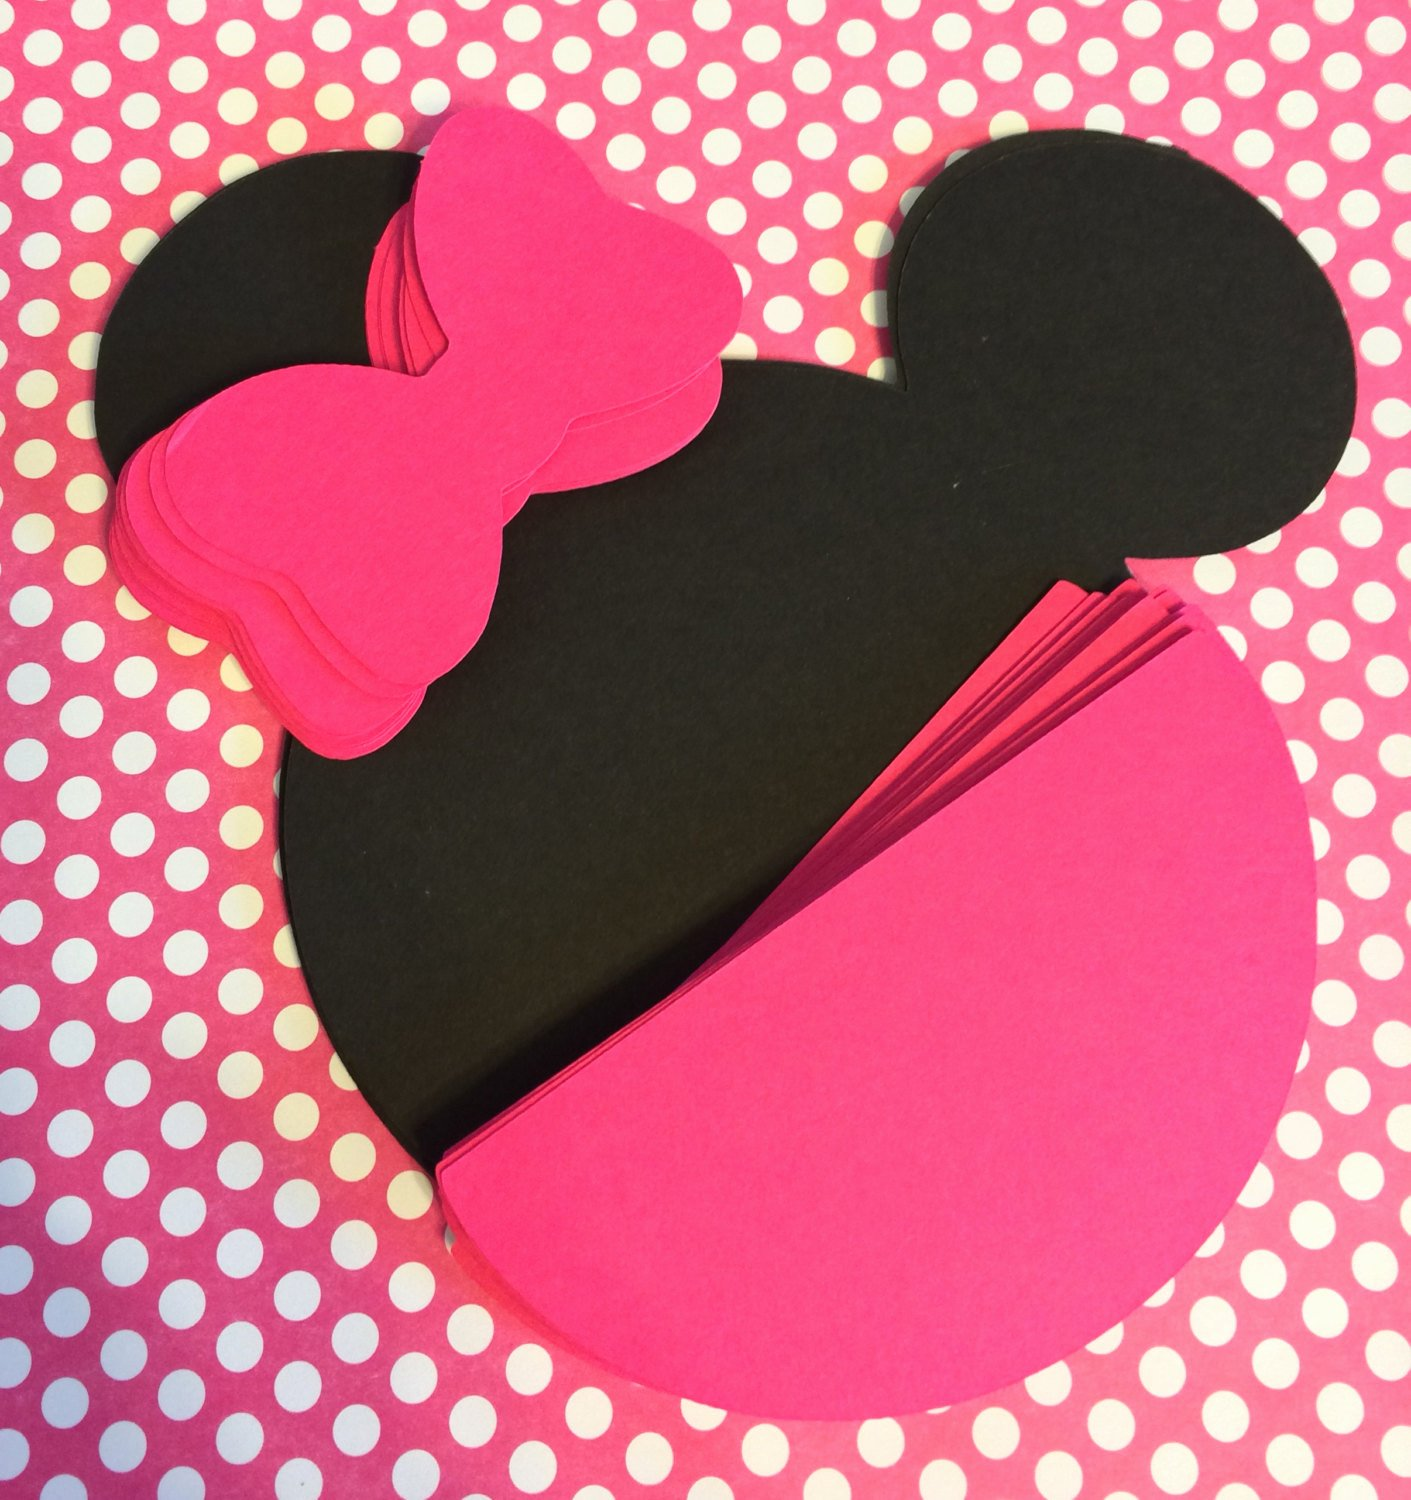 Pink Minnie Mouse Invitations Unique 10 Diy Hot Pink Minnie Mouse Die Cut Invitations